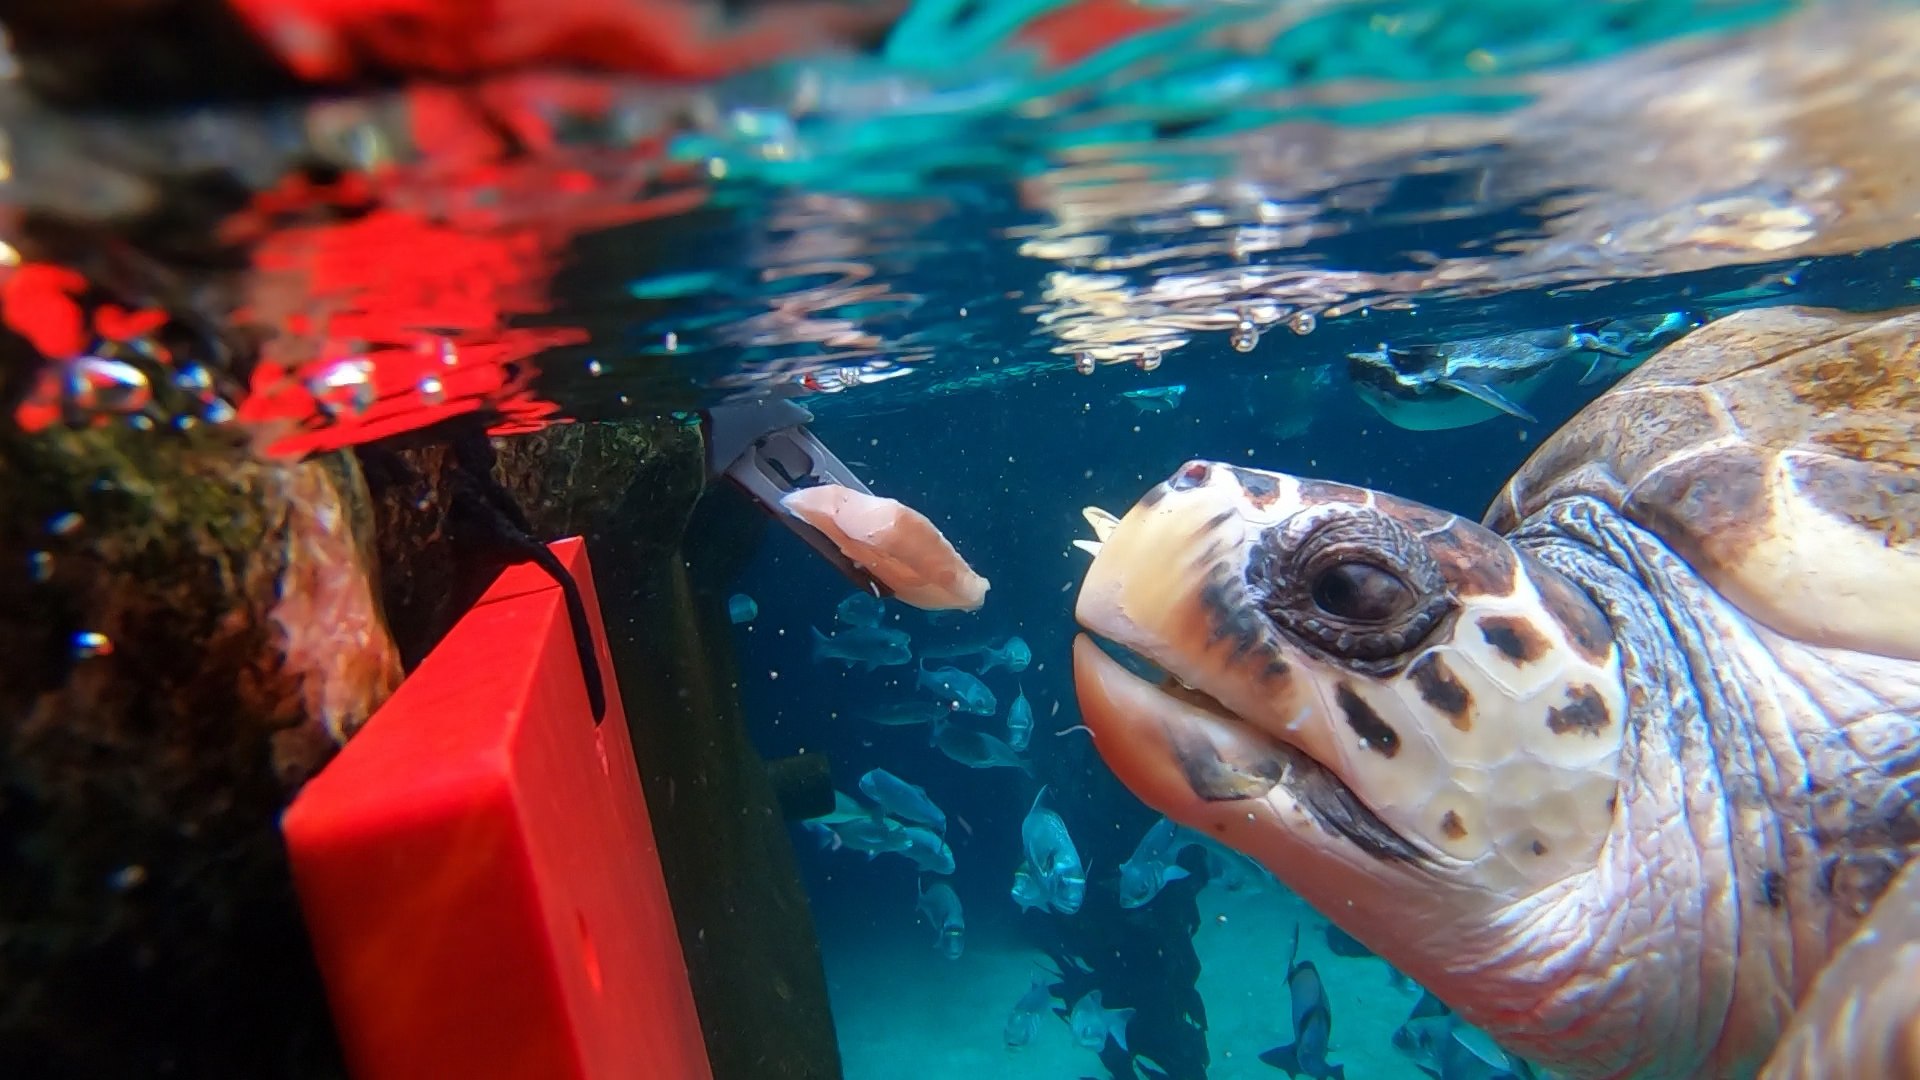 Federica the turtle is enjoying her new life at Loro Parque